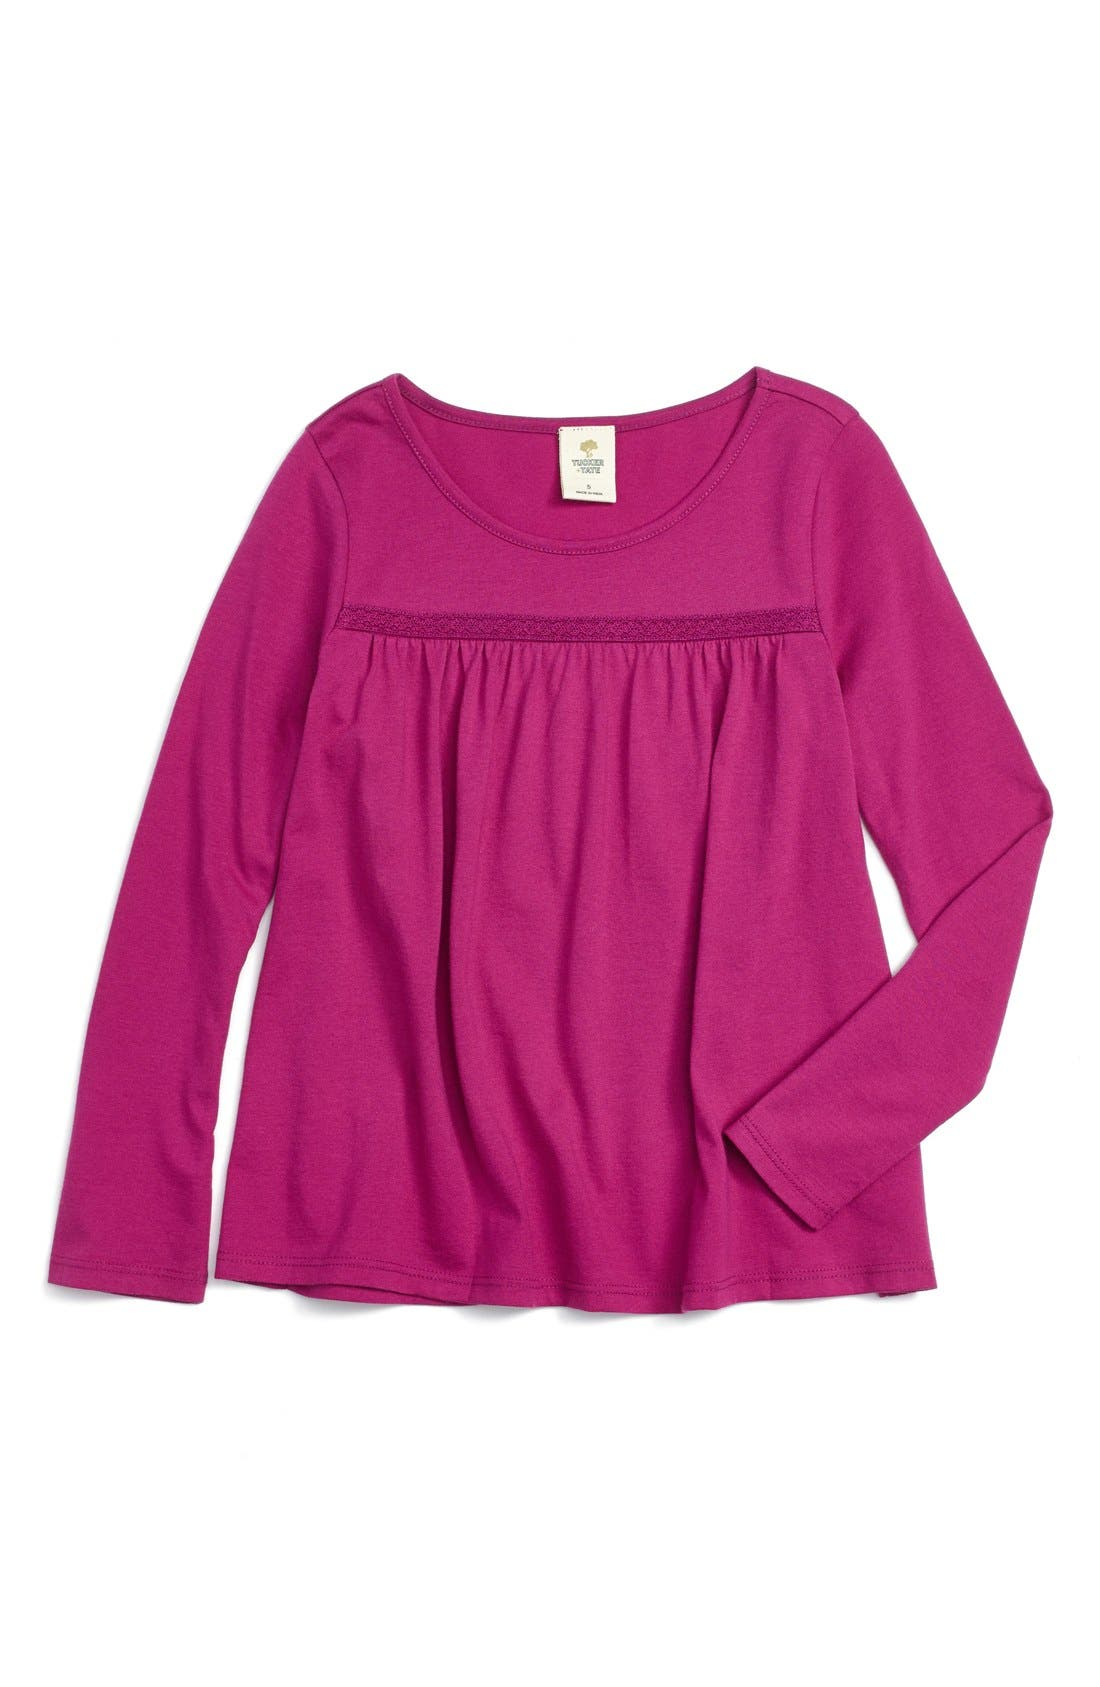 Alternate Image 1 Selected - Tucker + Tate 'Patty' Long Sleeve Tee (Toddler Girls, Little Girls & Big Girls)